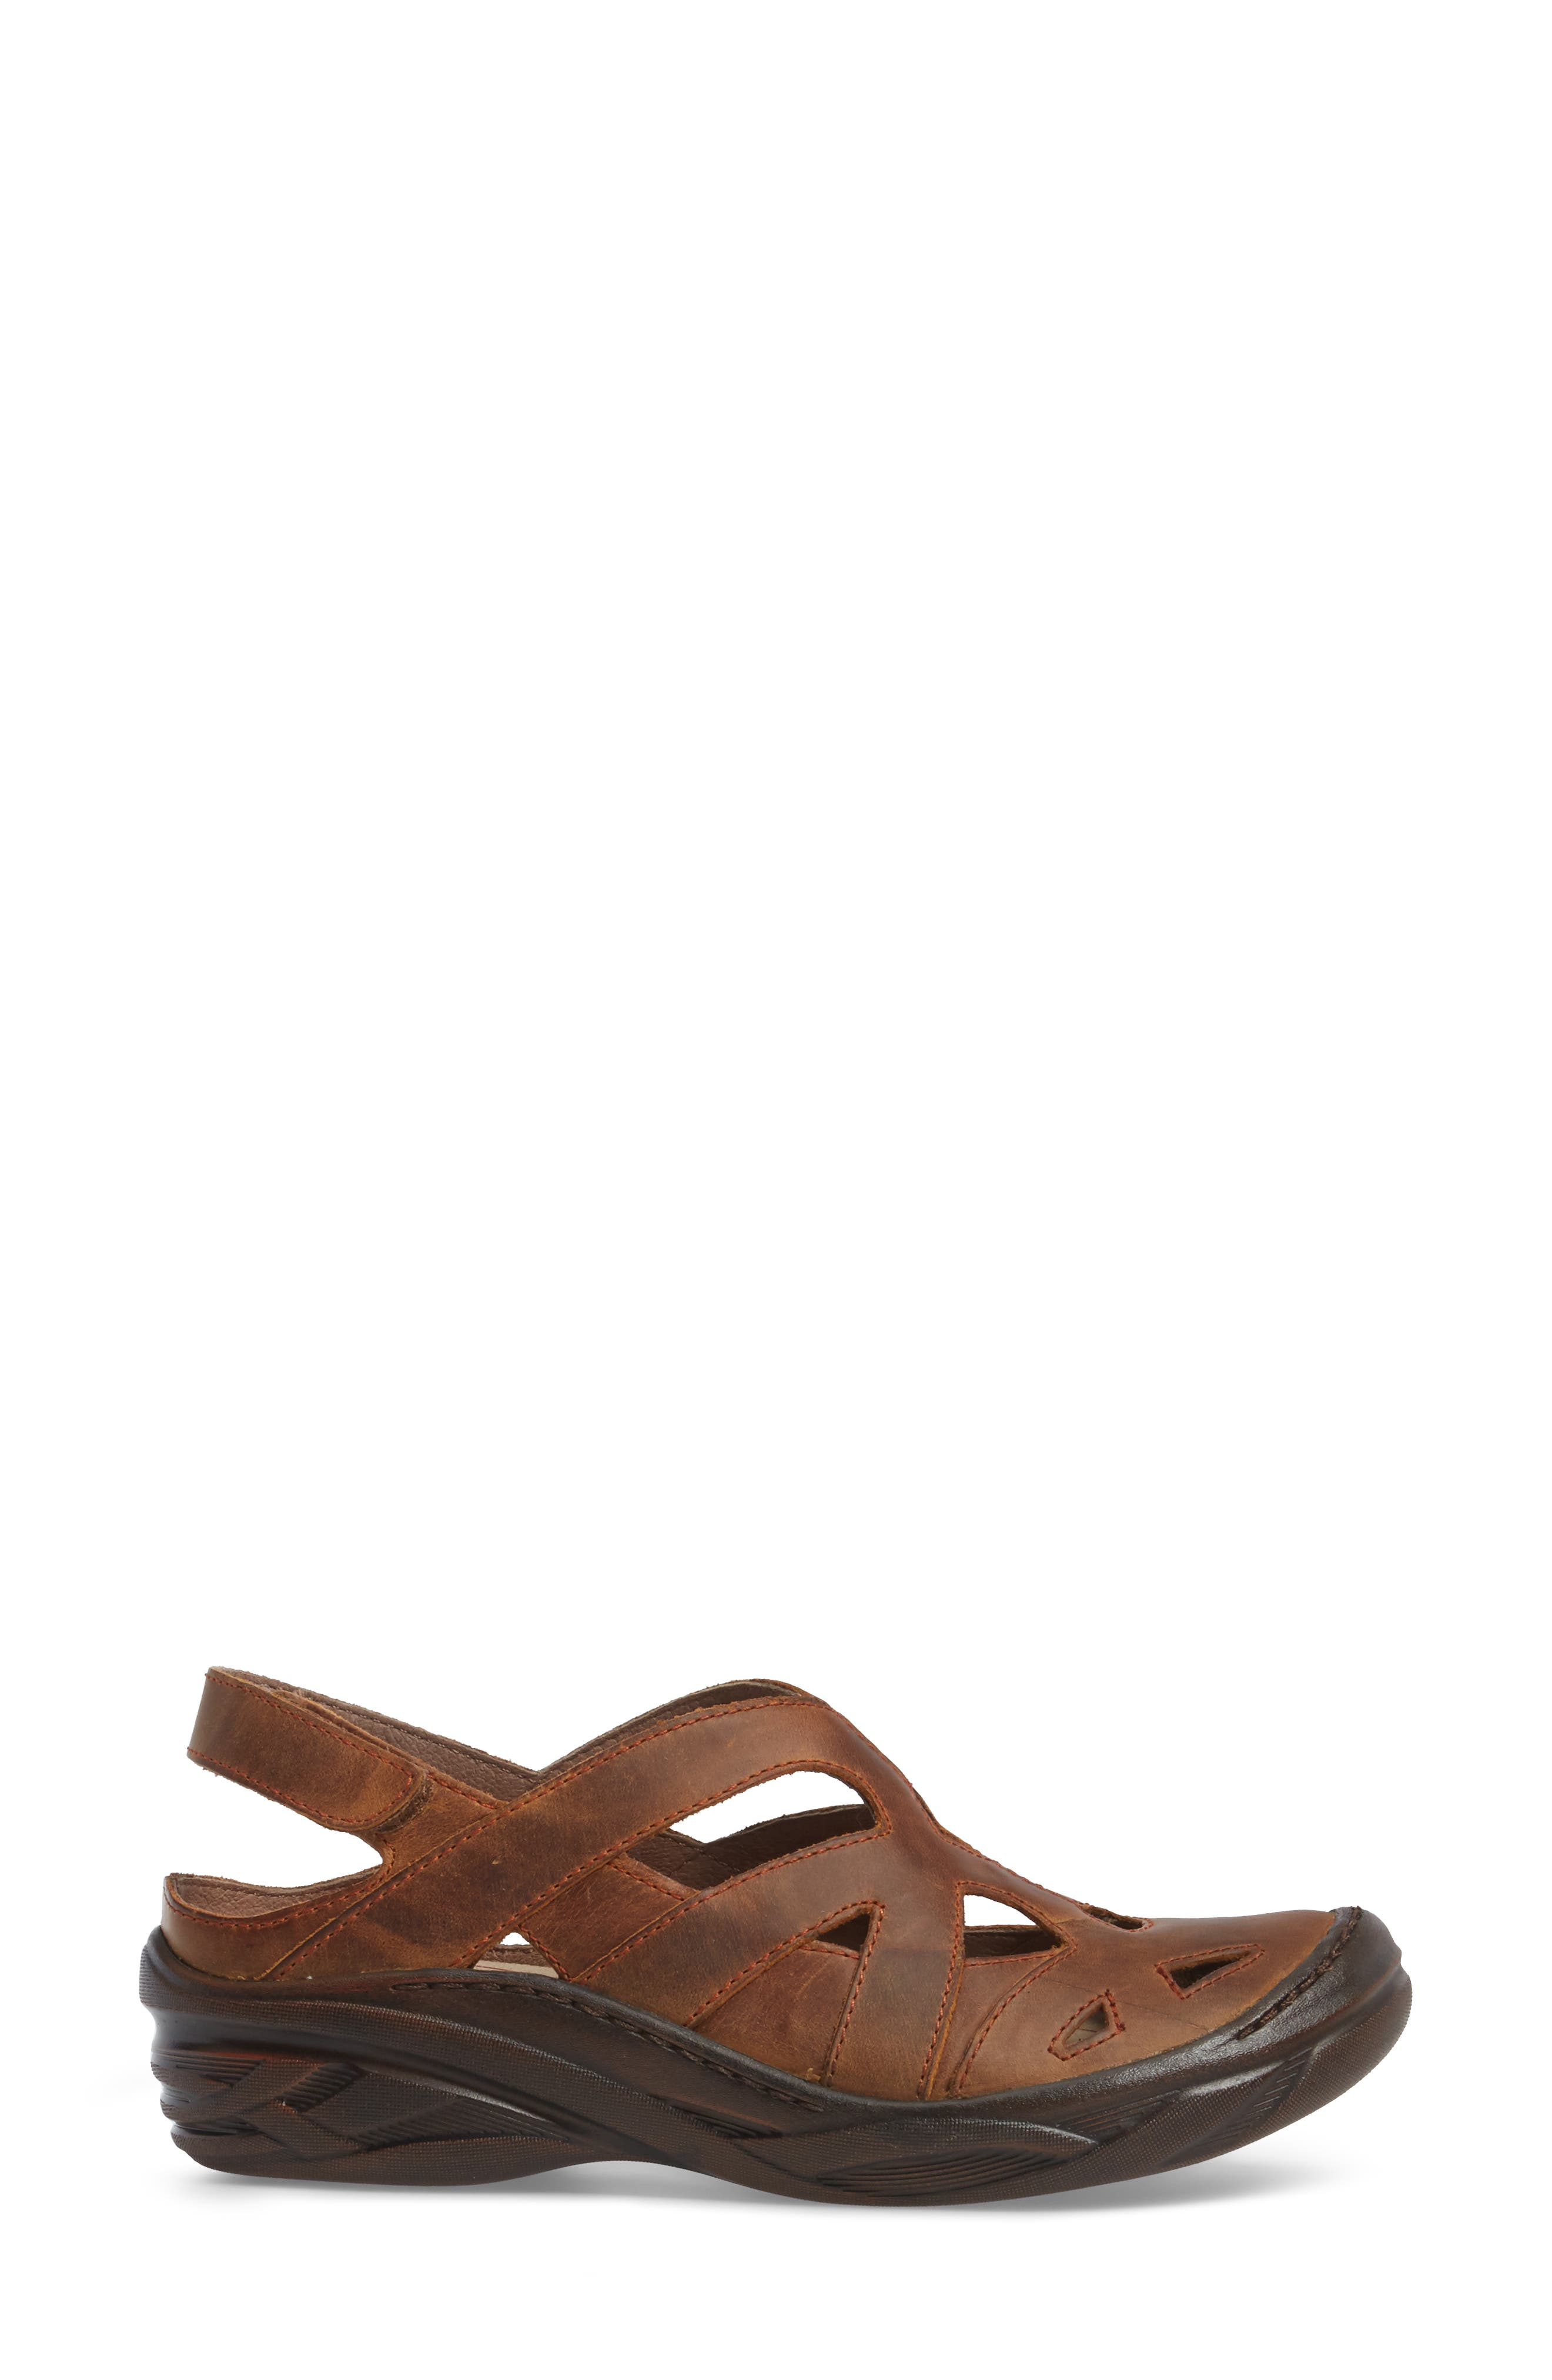 BIONICA,                             Maclean Sandal,                             Alternate thumbnail 3, color,                             ALMOND TAN LEATHER